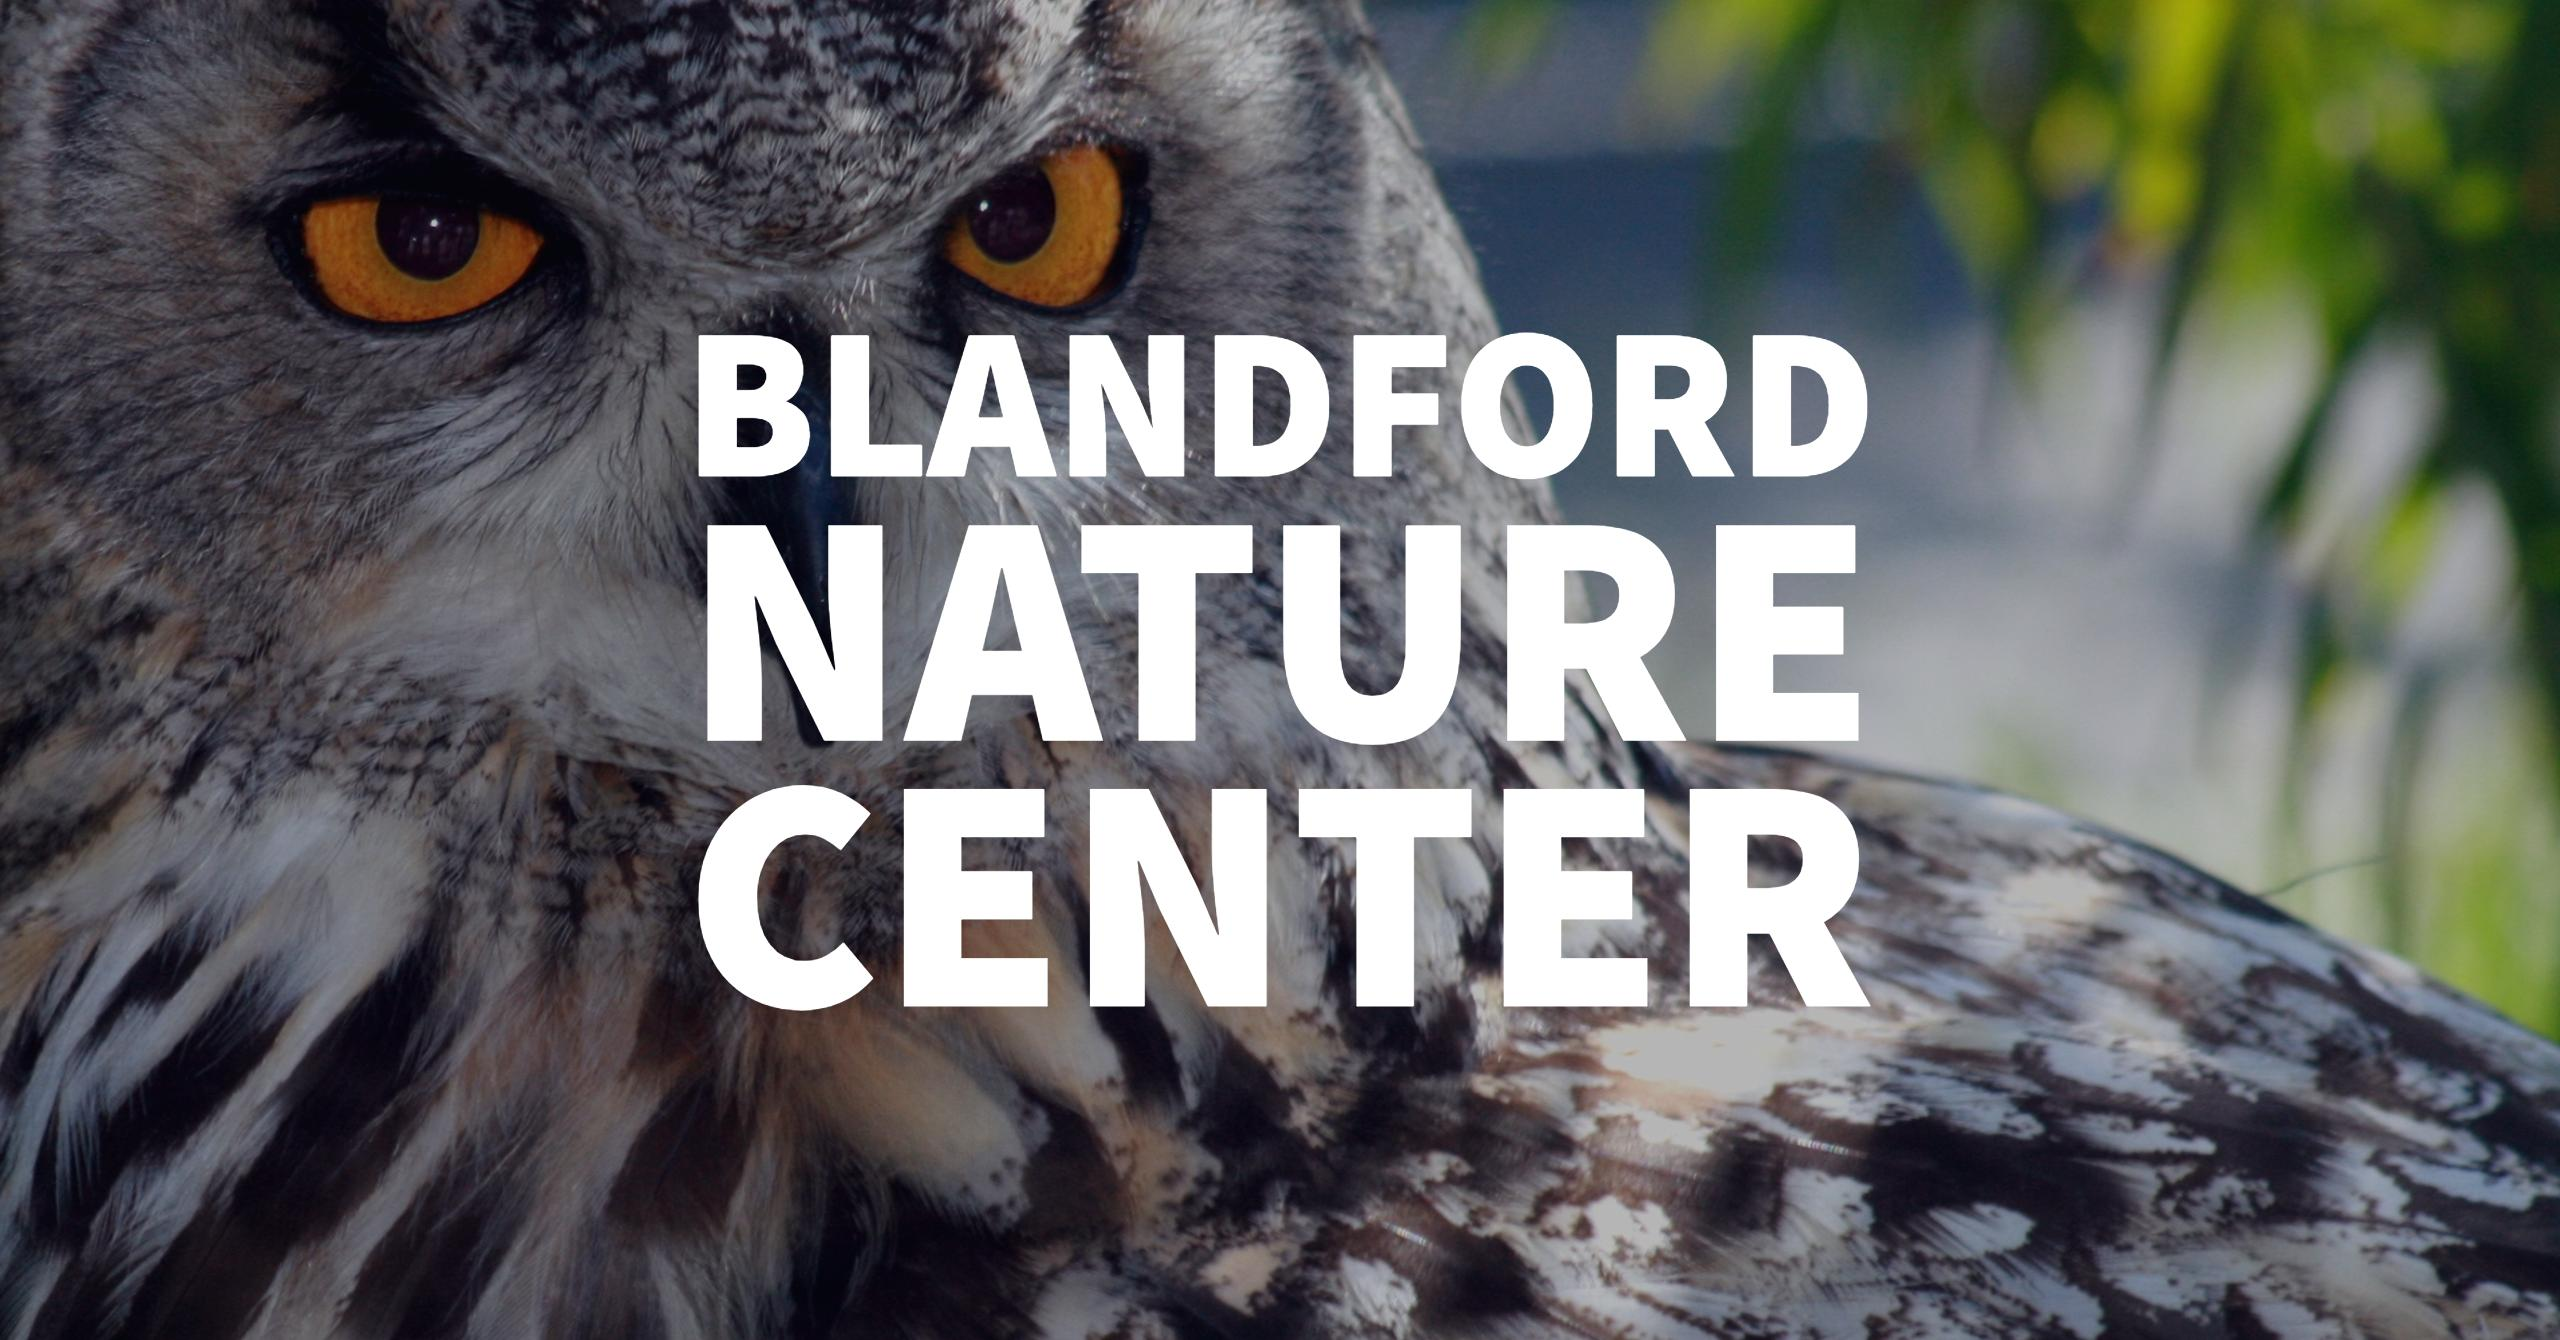 Blandford Nature Center